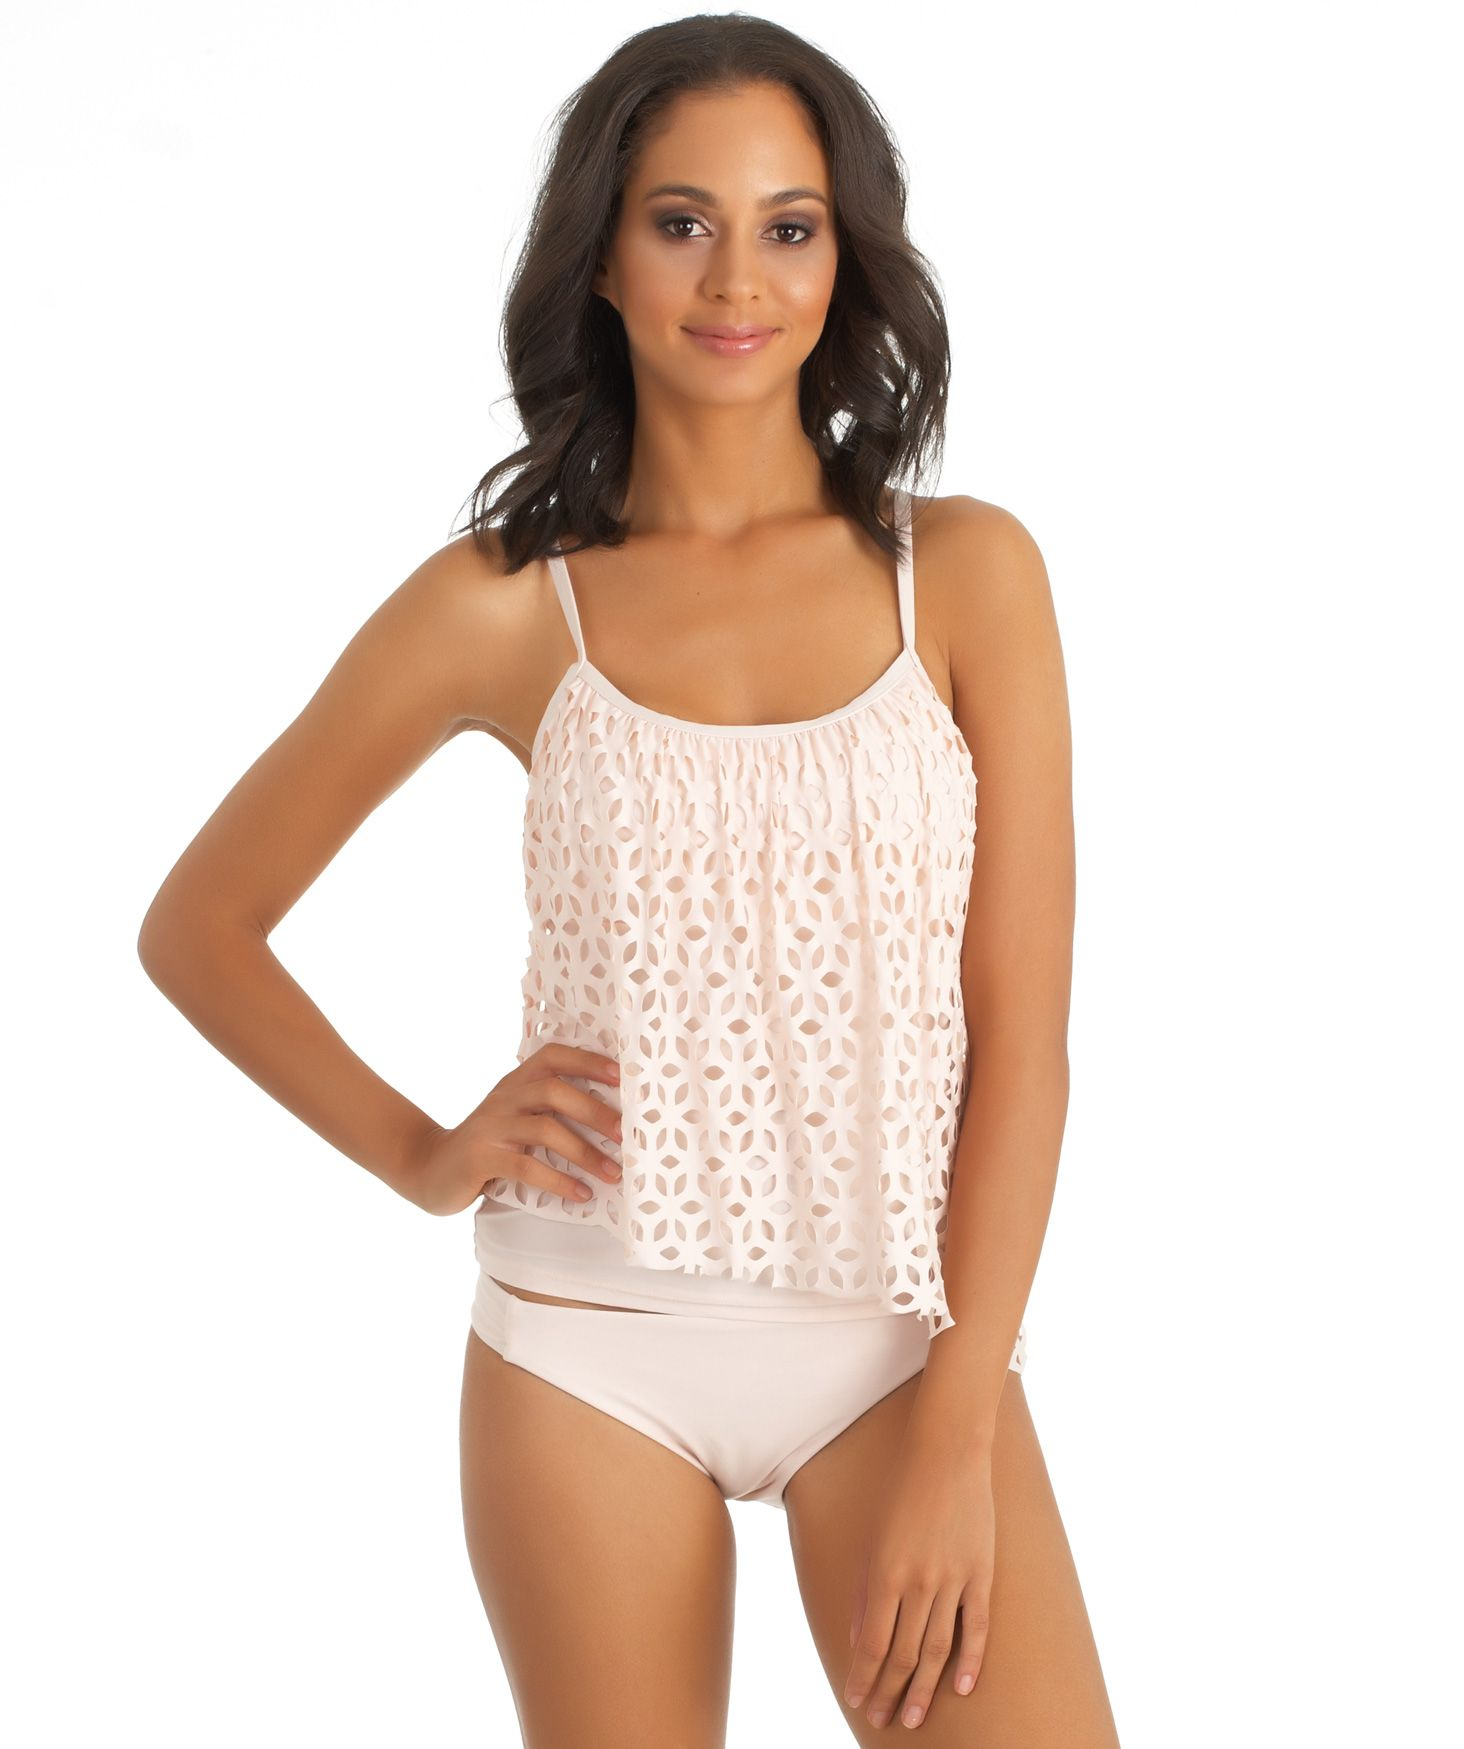 With the variety of designer bathing suits that South Beach Swimsuits carries, women are able to find the perfect tankini swimwear to fit their personal style and coverage needs. Many of the tops and bottoms can even be mixed and matched to create unique swimsuit combinations.